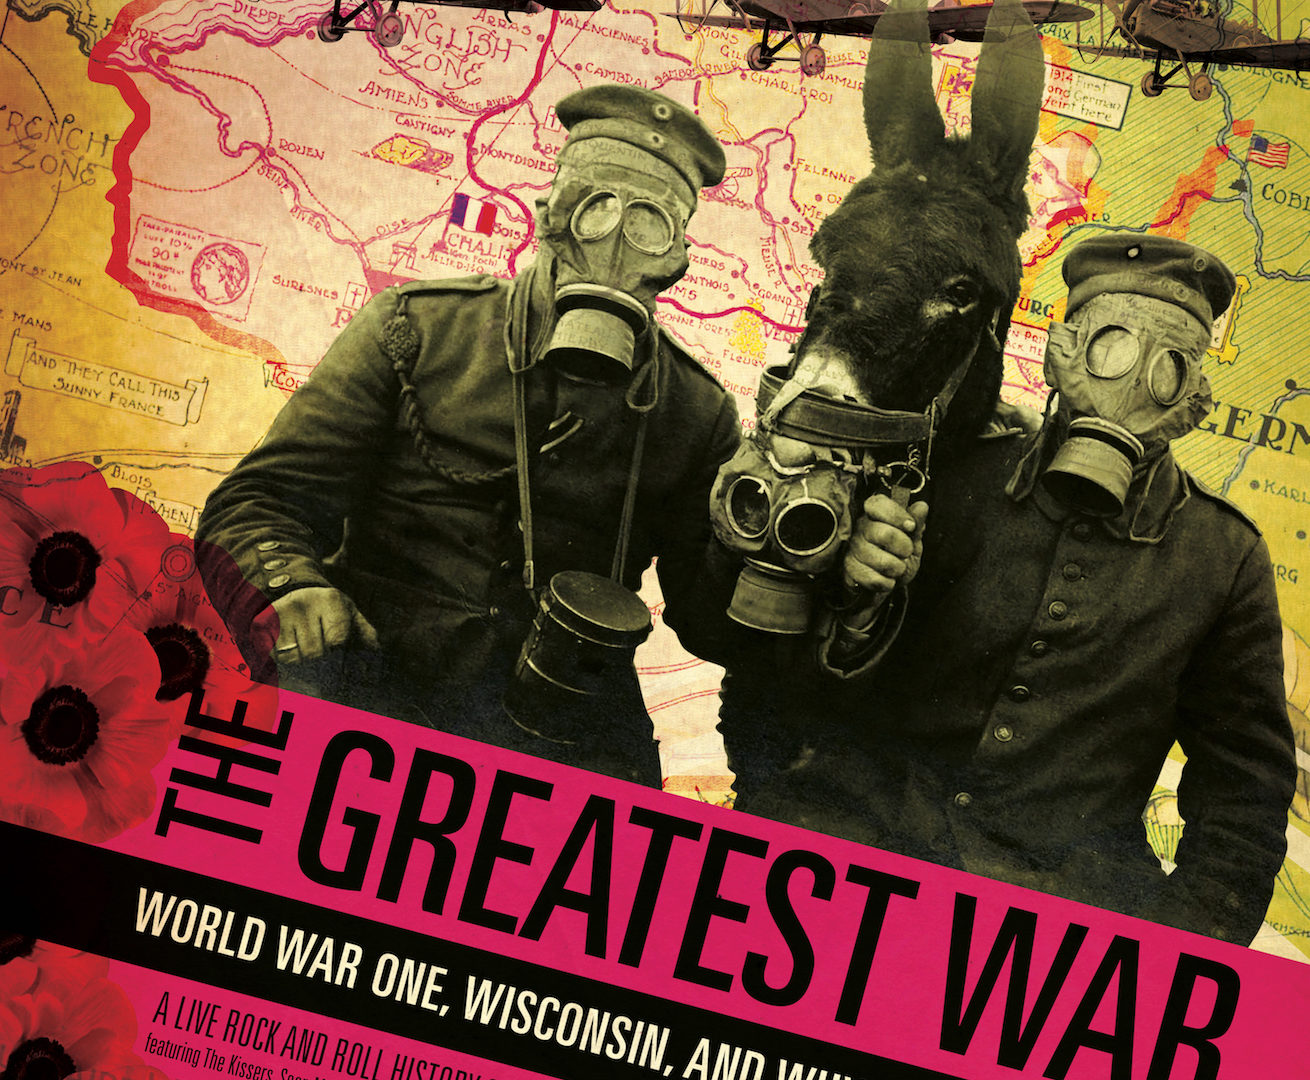 The Greatest War: Special Event with The Kissers